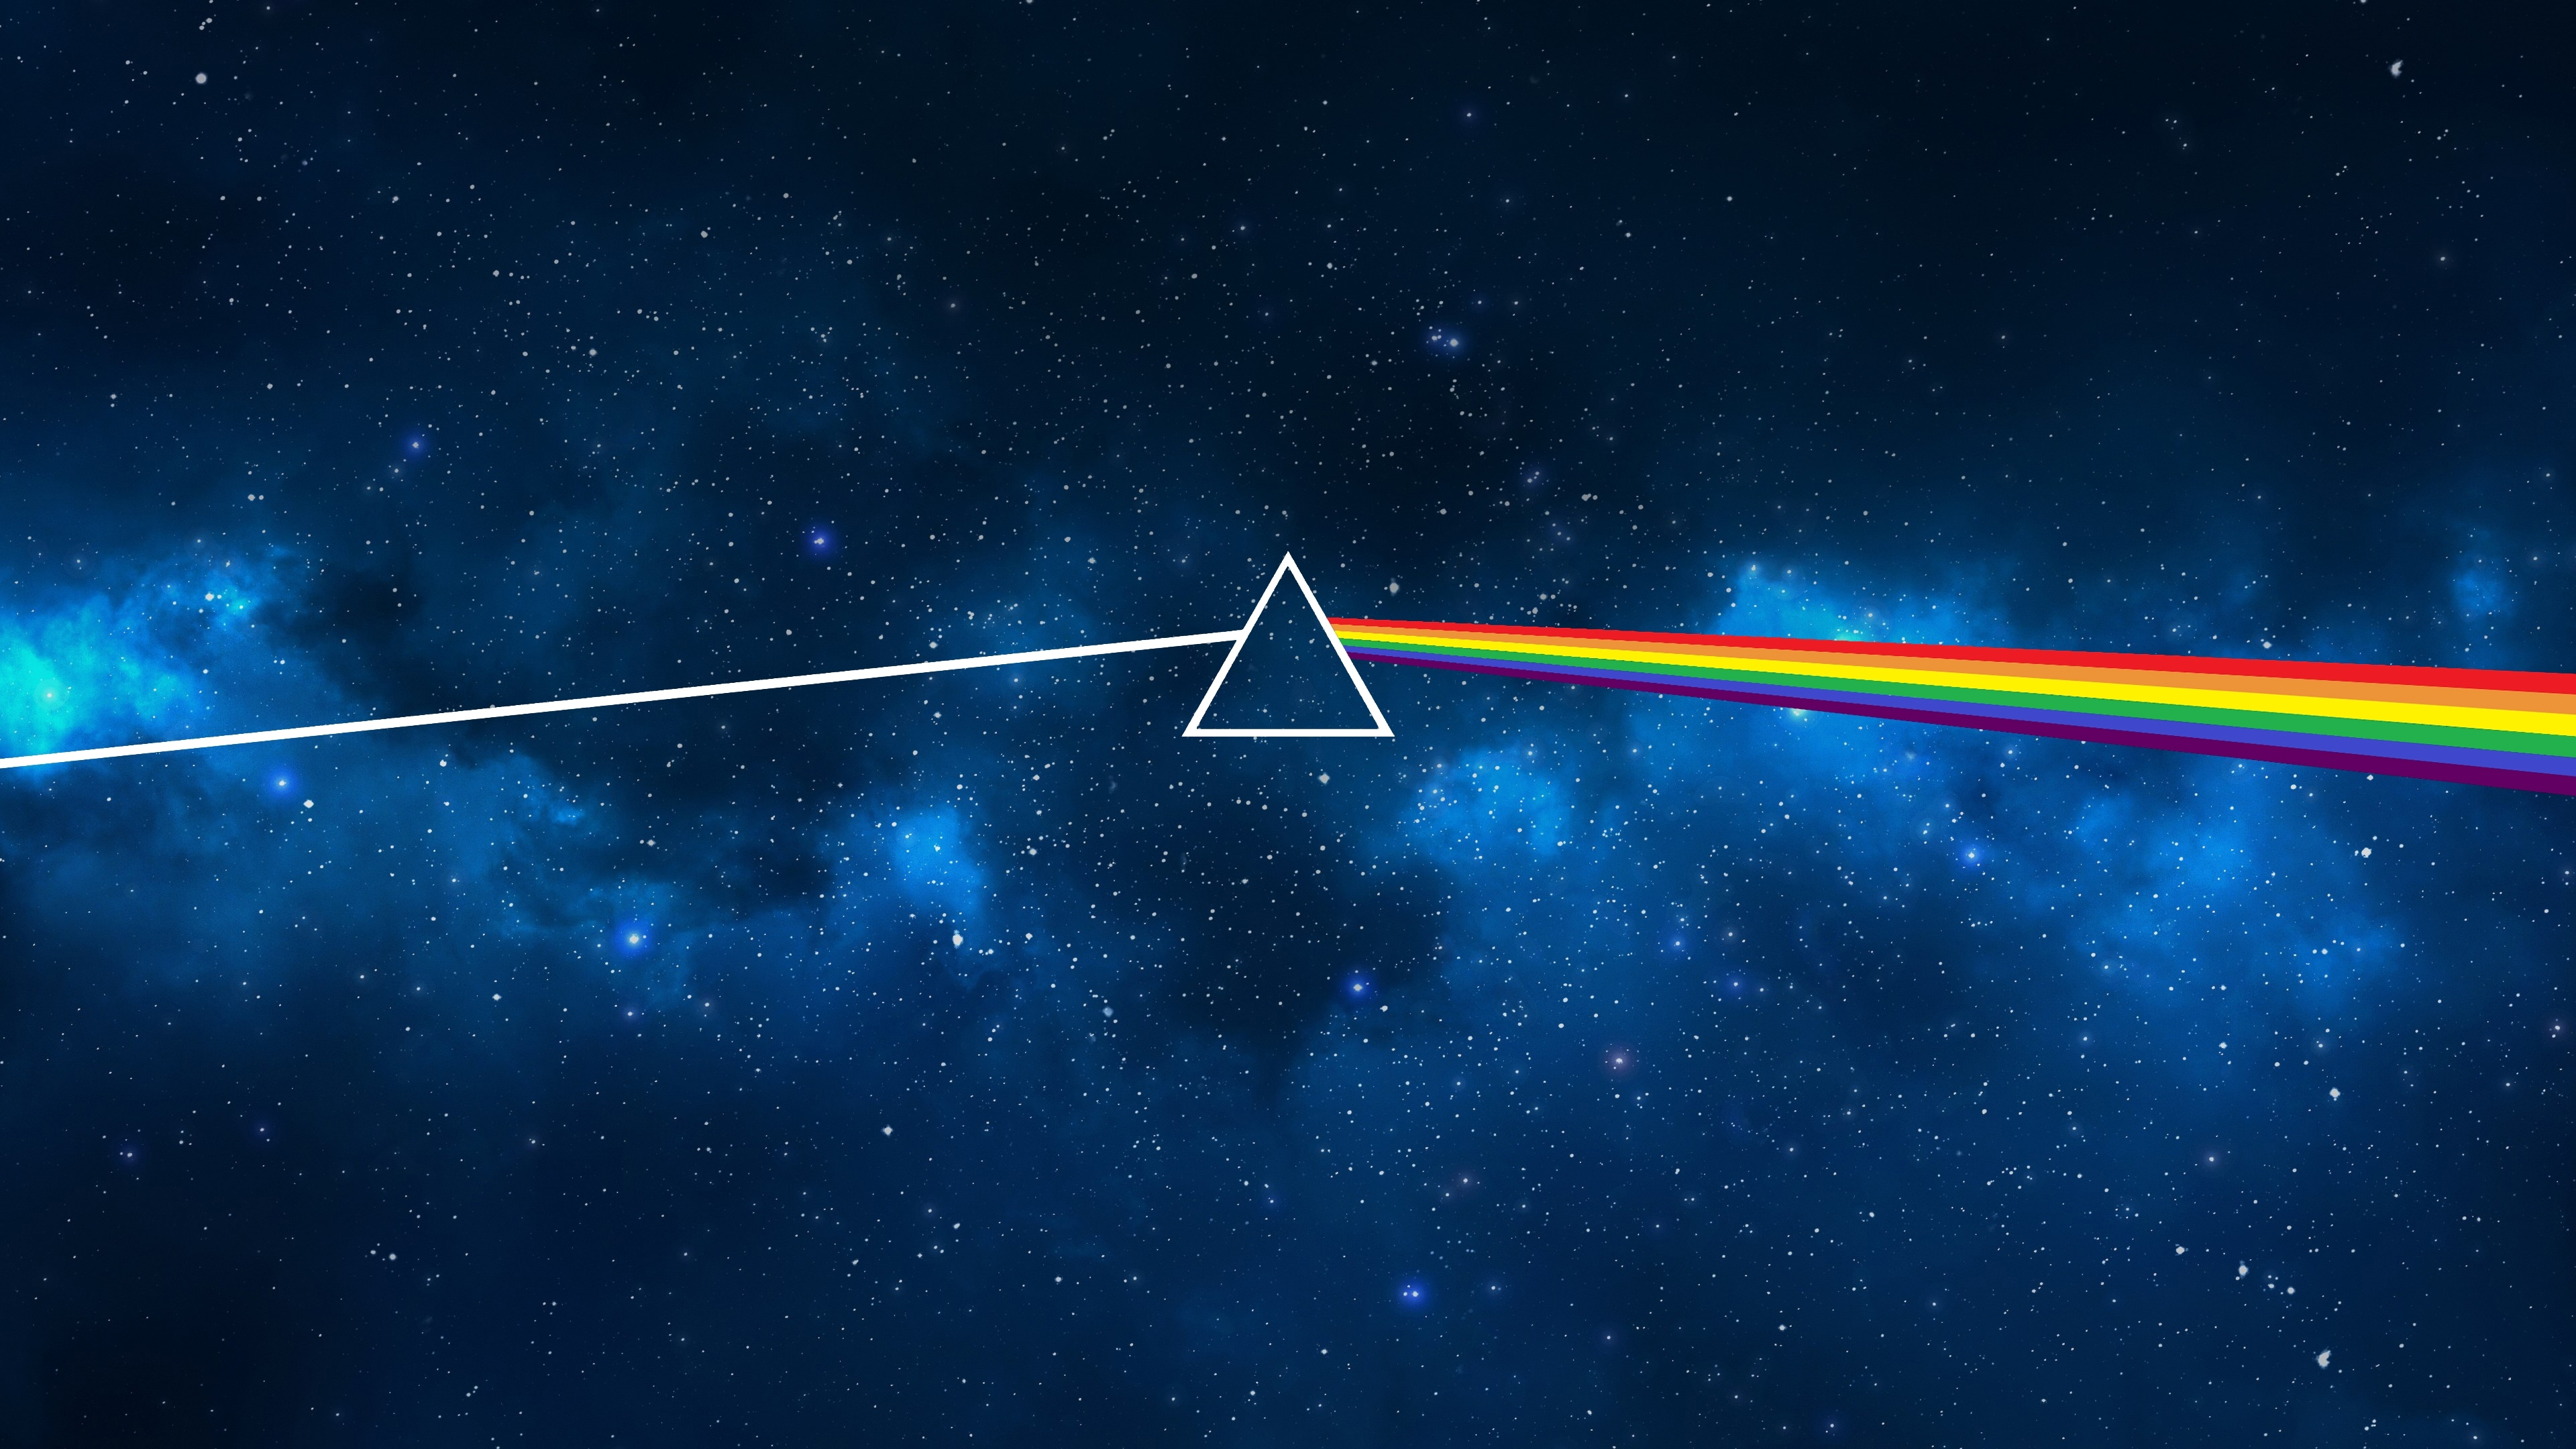 dark side of the moon wallpapers - album on imgur